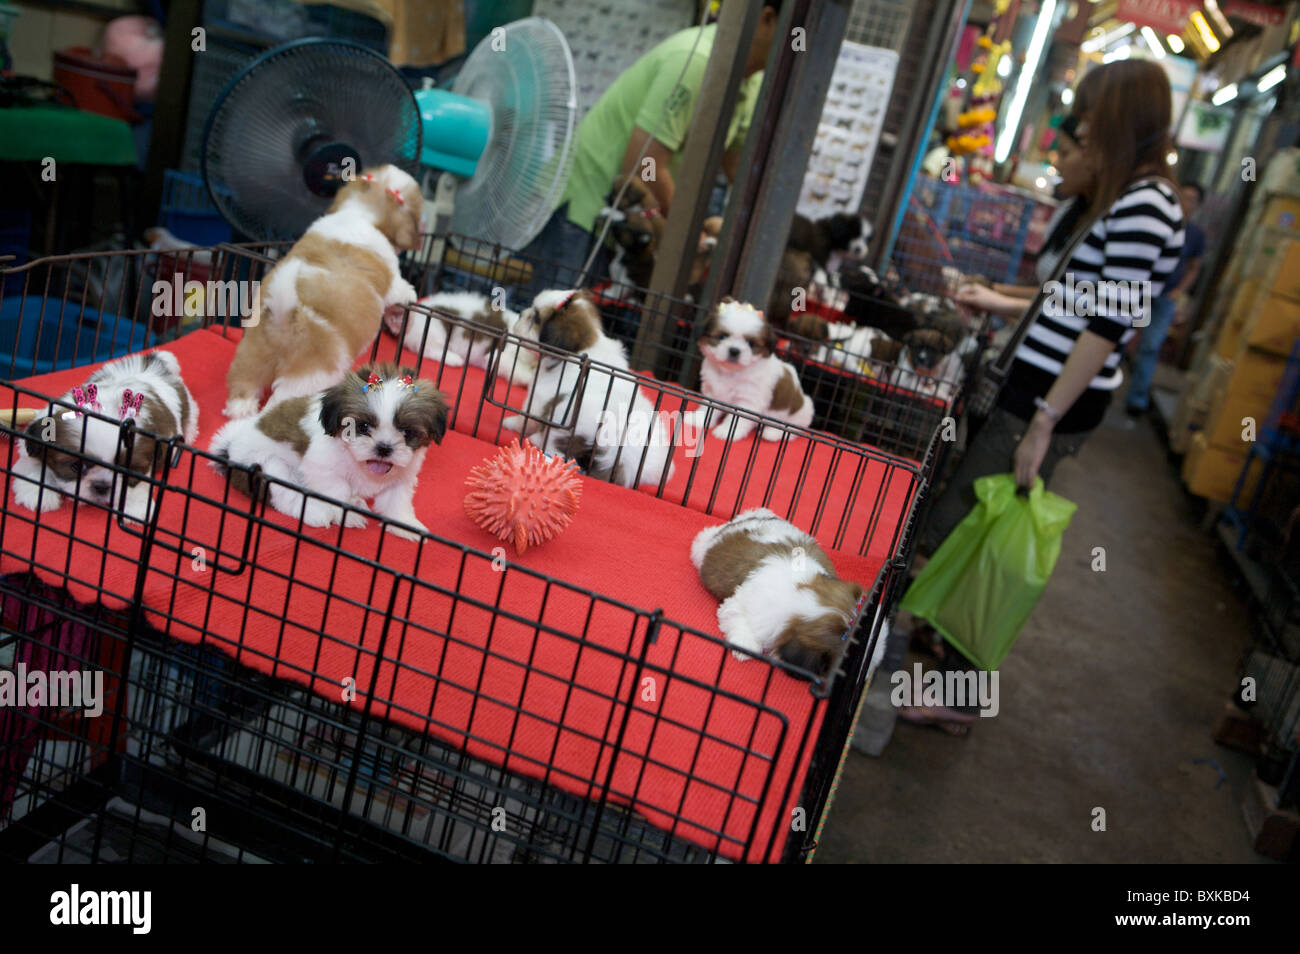 Dogs for sale at Chatuchak Weekend Market - Stock Image